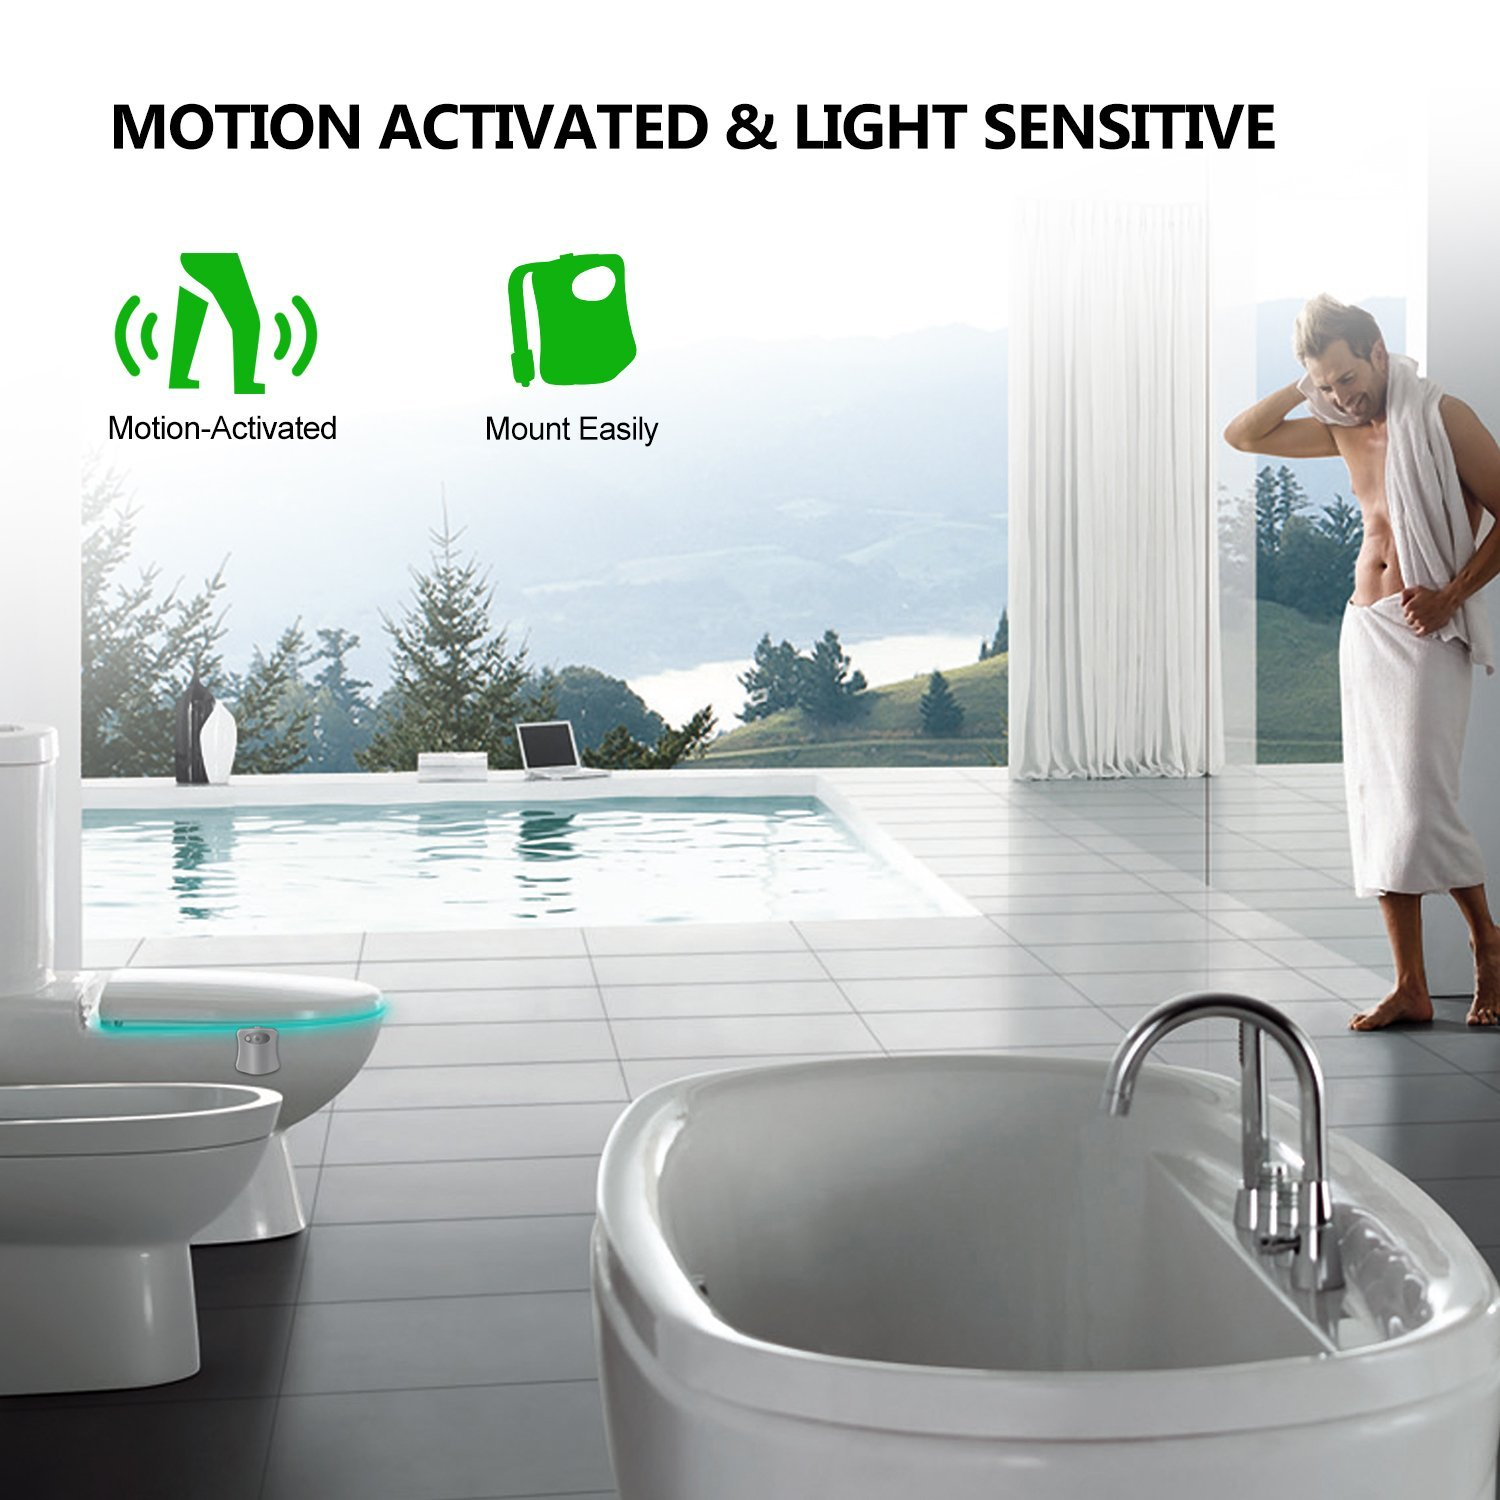 Toilet Night Light, Motion Activated Toilet Night Light, 8 Color Changing Sensor LED Washroom Night Light Fits Any Toilet